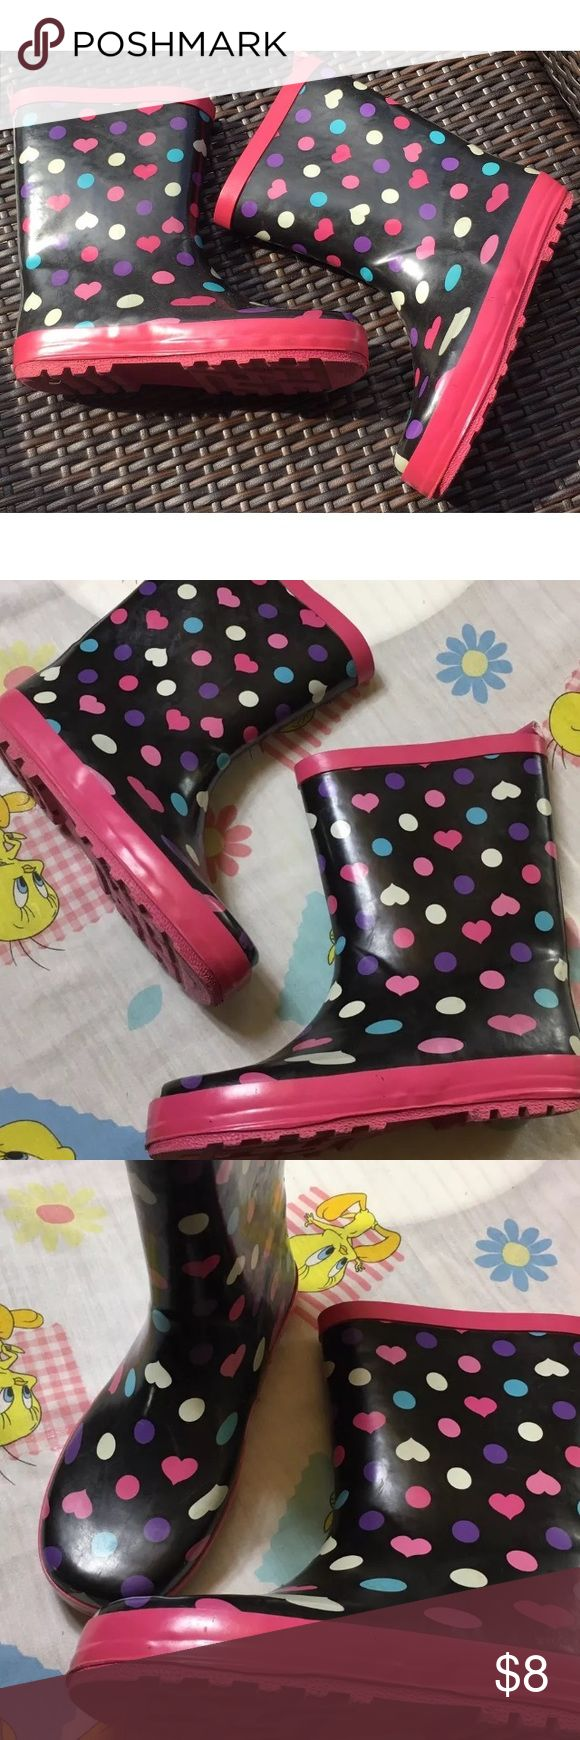 Girls rubber rain boots Sz 2-3 Great used condition. Worn twice Shoes Rain & Snow Boots